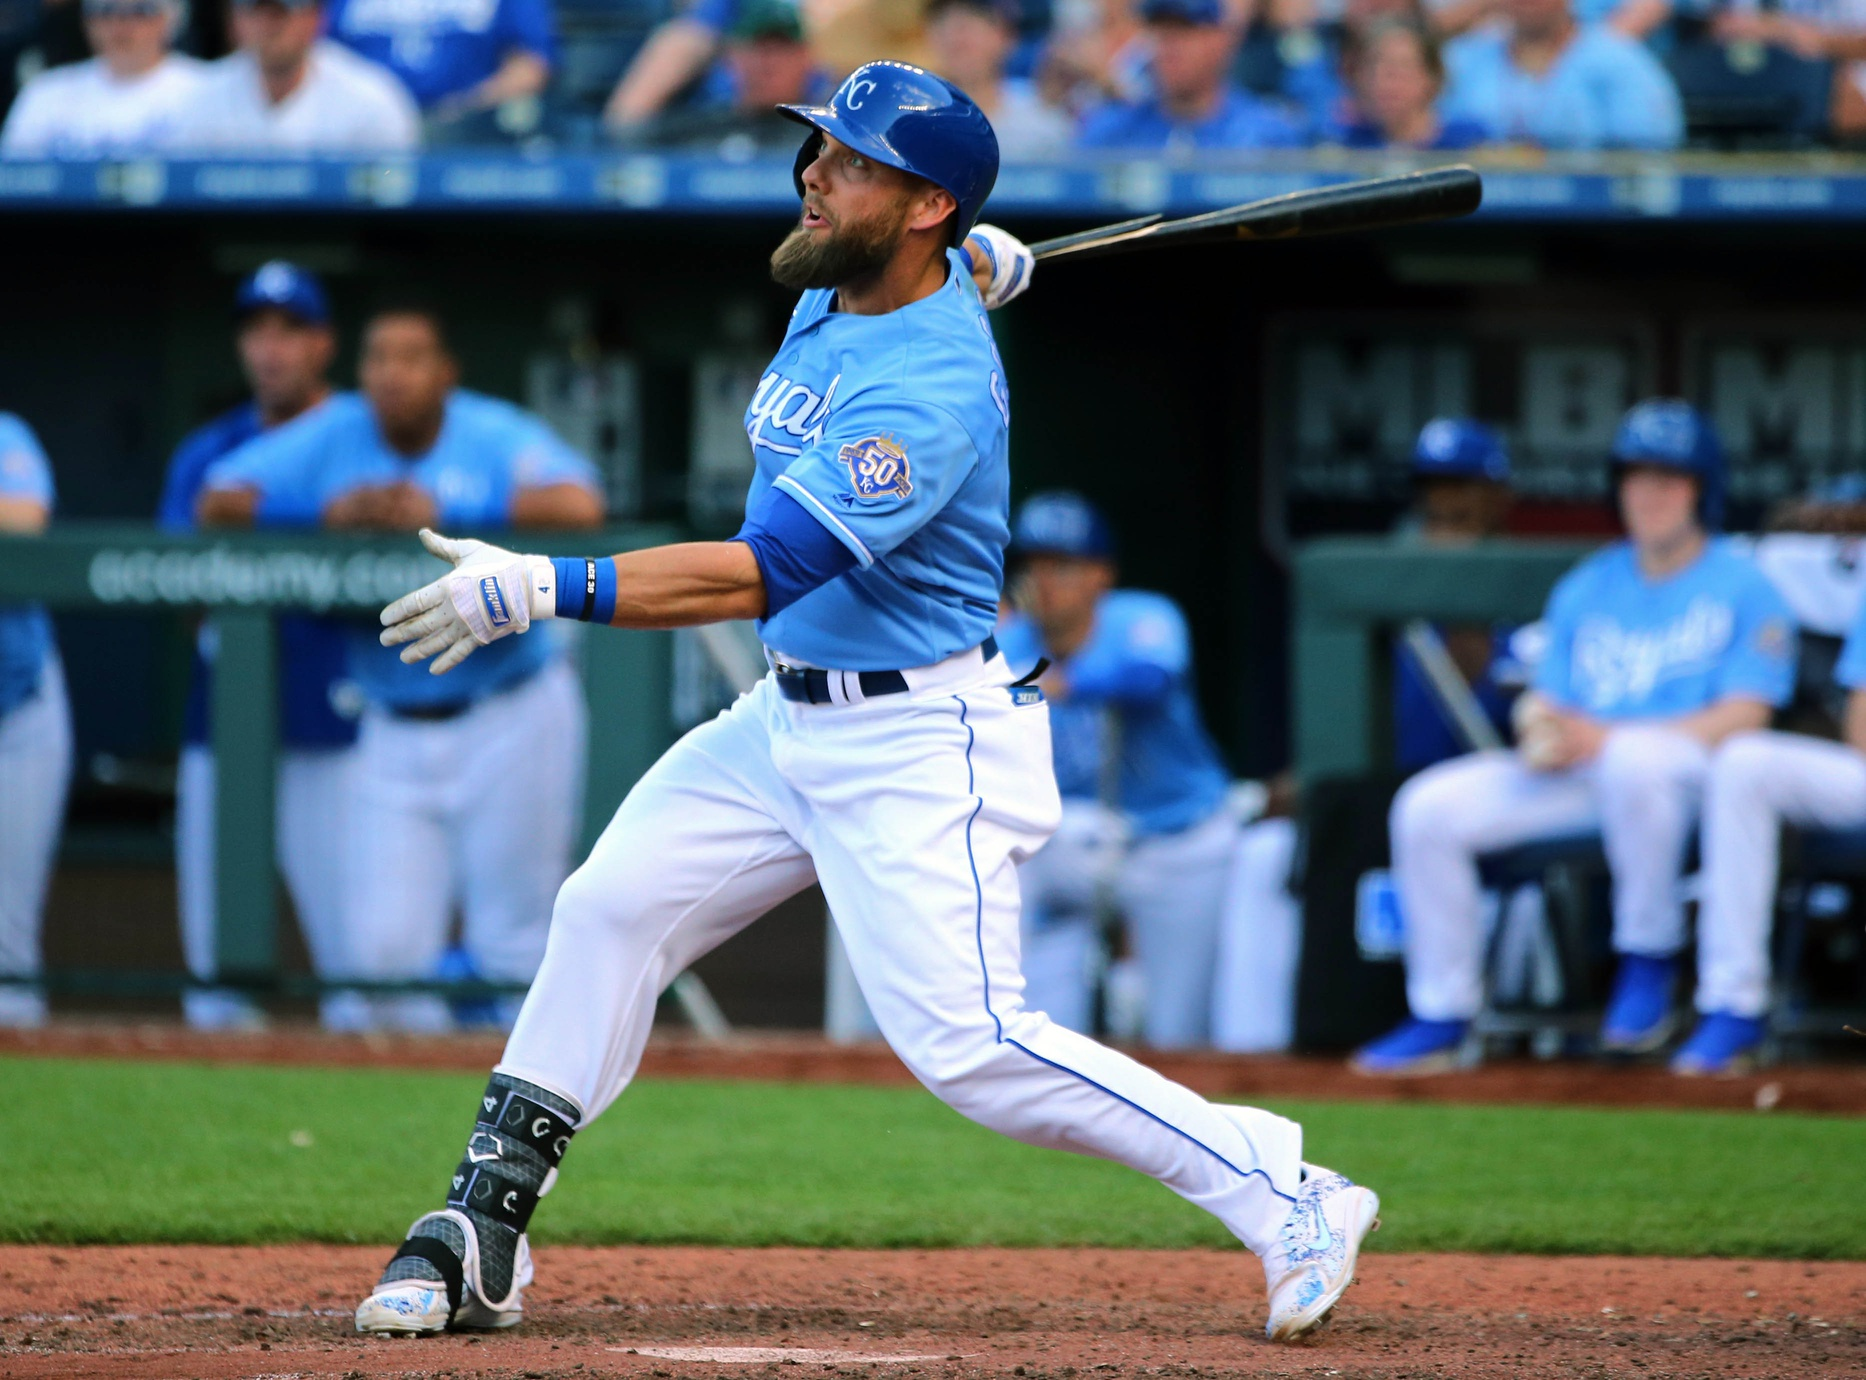 May 5, 2018; Kansas City, MO, USA; Kansas City Royals left fielder Alex Gordon (4) drives in a run on an error by Detroit Tigers center fielder Leonys Martin (not pitctured) in the ninth inning at Kauffman Stadium. Mandatory Credit: Jay Biggerstaff-USA TODAY Sports